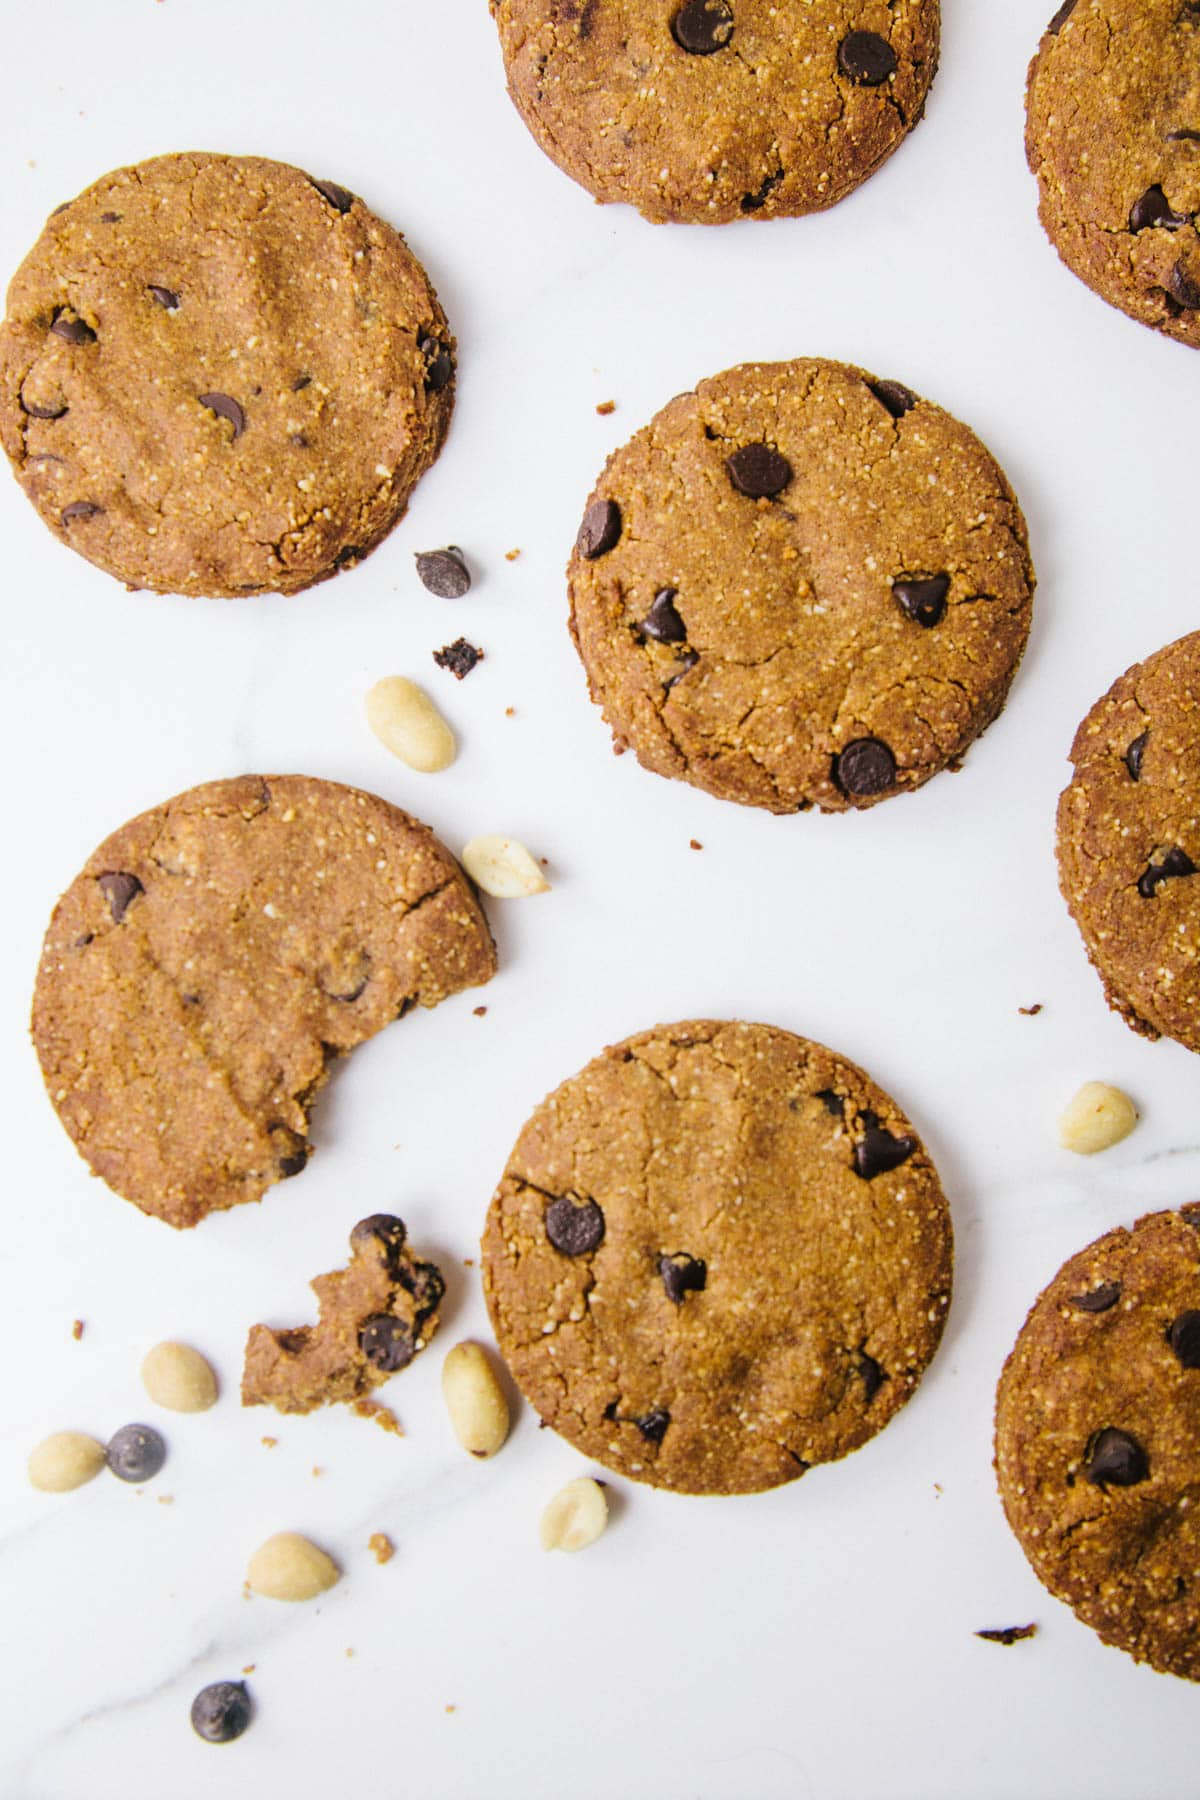 Low Carb Peanut Flour Chocolate Chip Cookies (Vegan / Grain free / Sugar free)